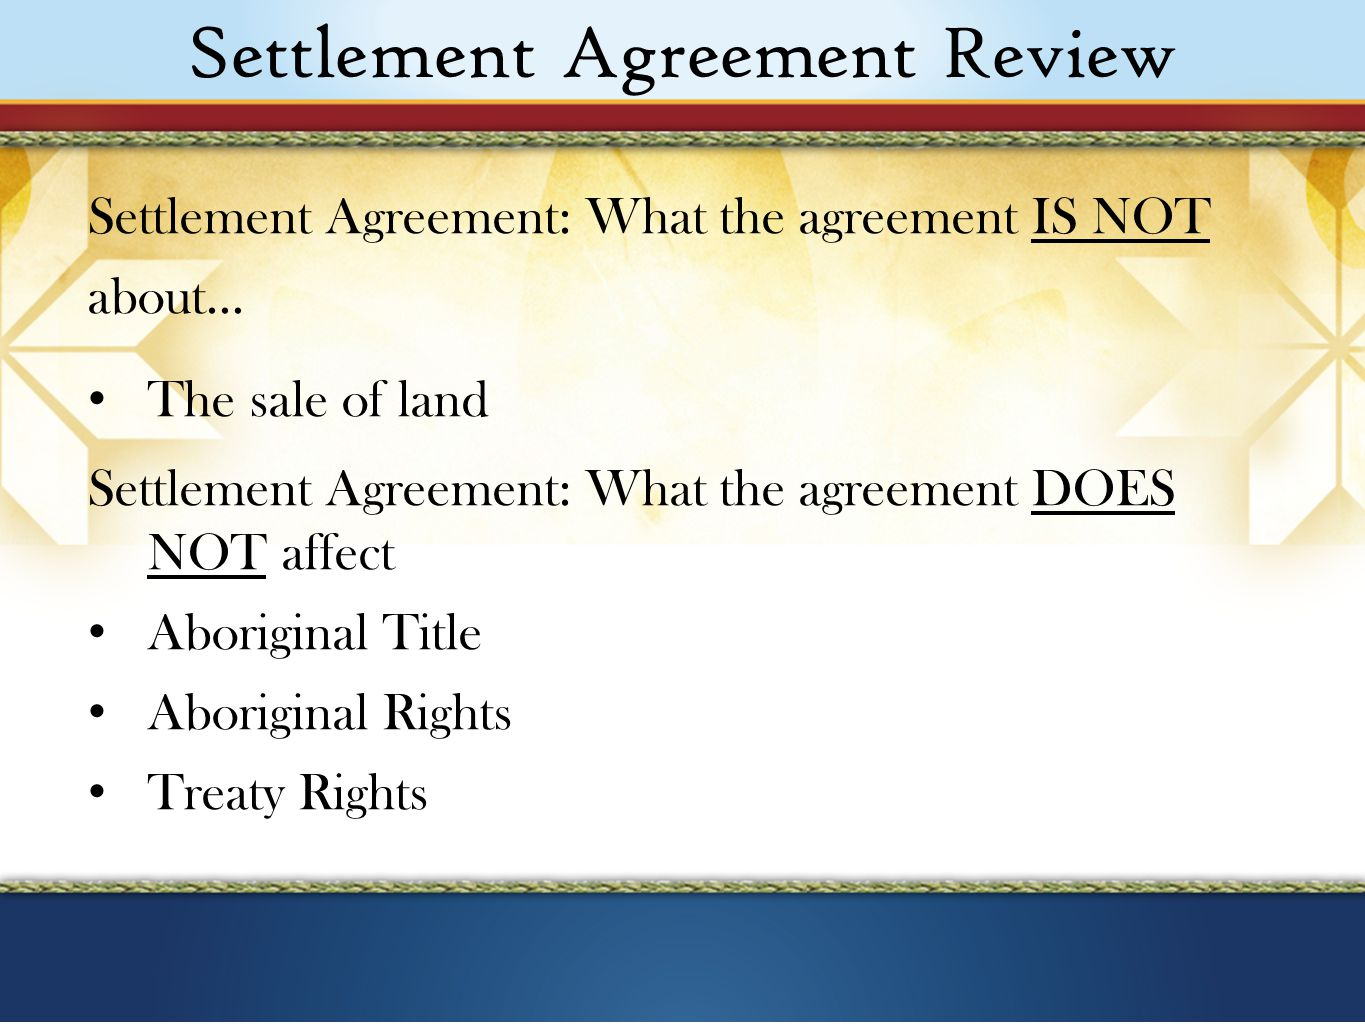 Settlement Agreement Review Settlement Agreement: What the agreement IS NOT about… The sale of land Settlement Agreement: What the agreement DOES NOT affect Aboriginal Title Aboriginal Rights Treaty Rights